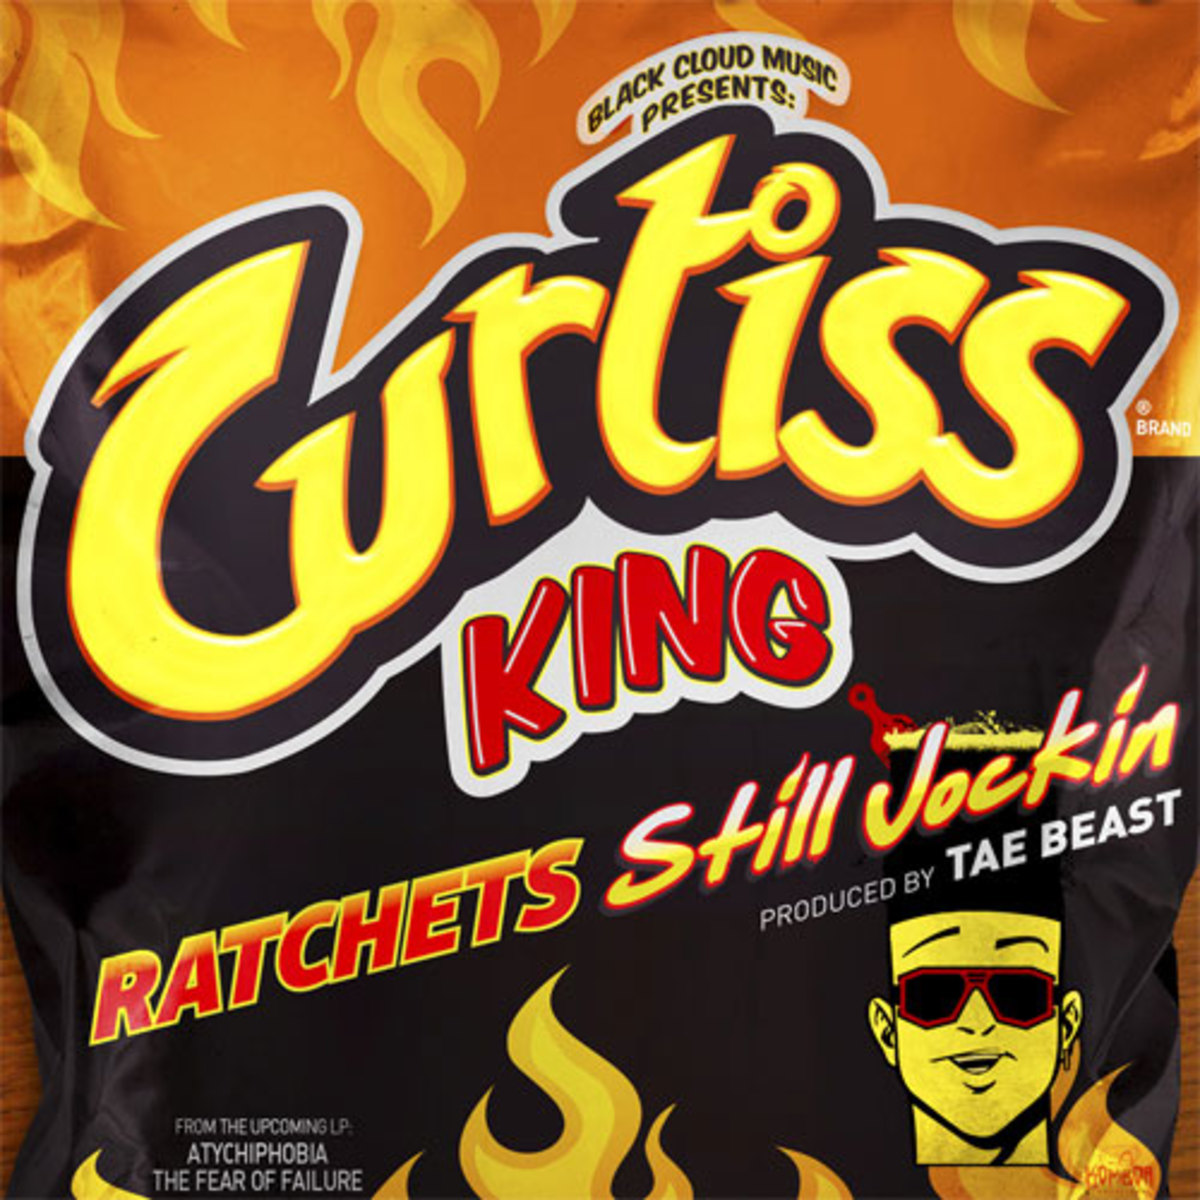 curtissking-ratchetson.jpg